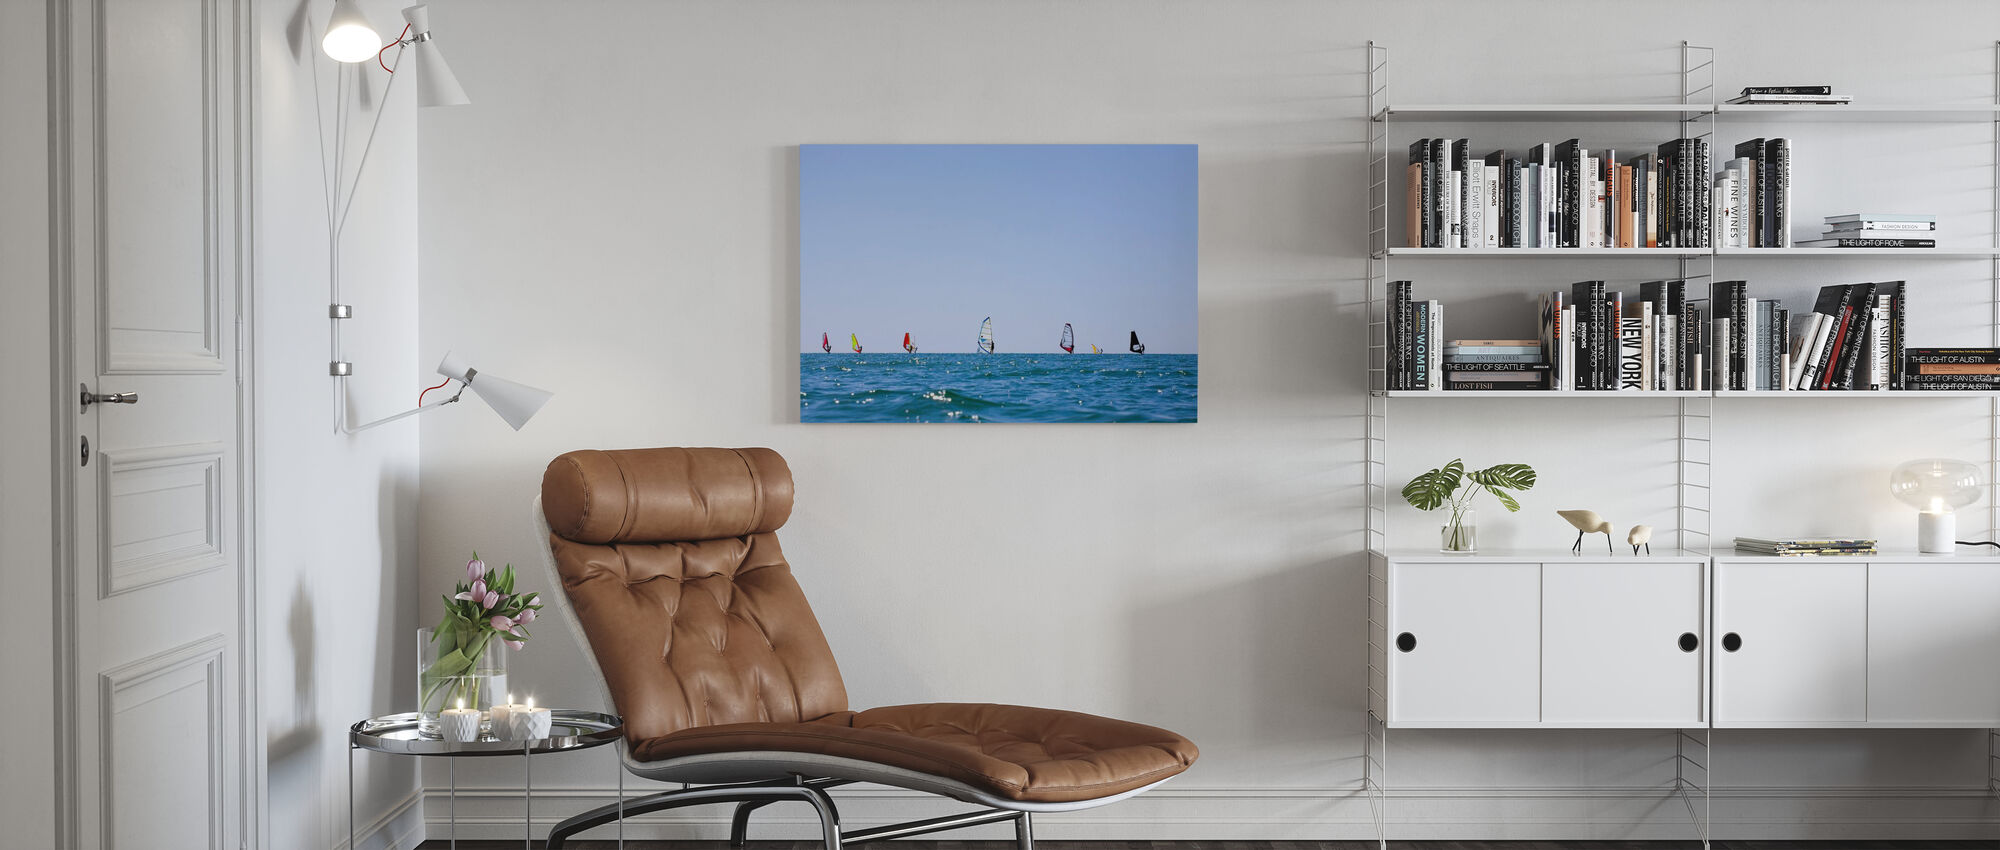 Windsurfing in Varberg, Sweden - Canvas print - Living Room